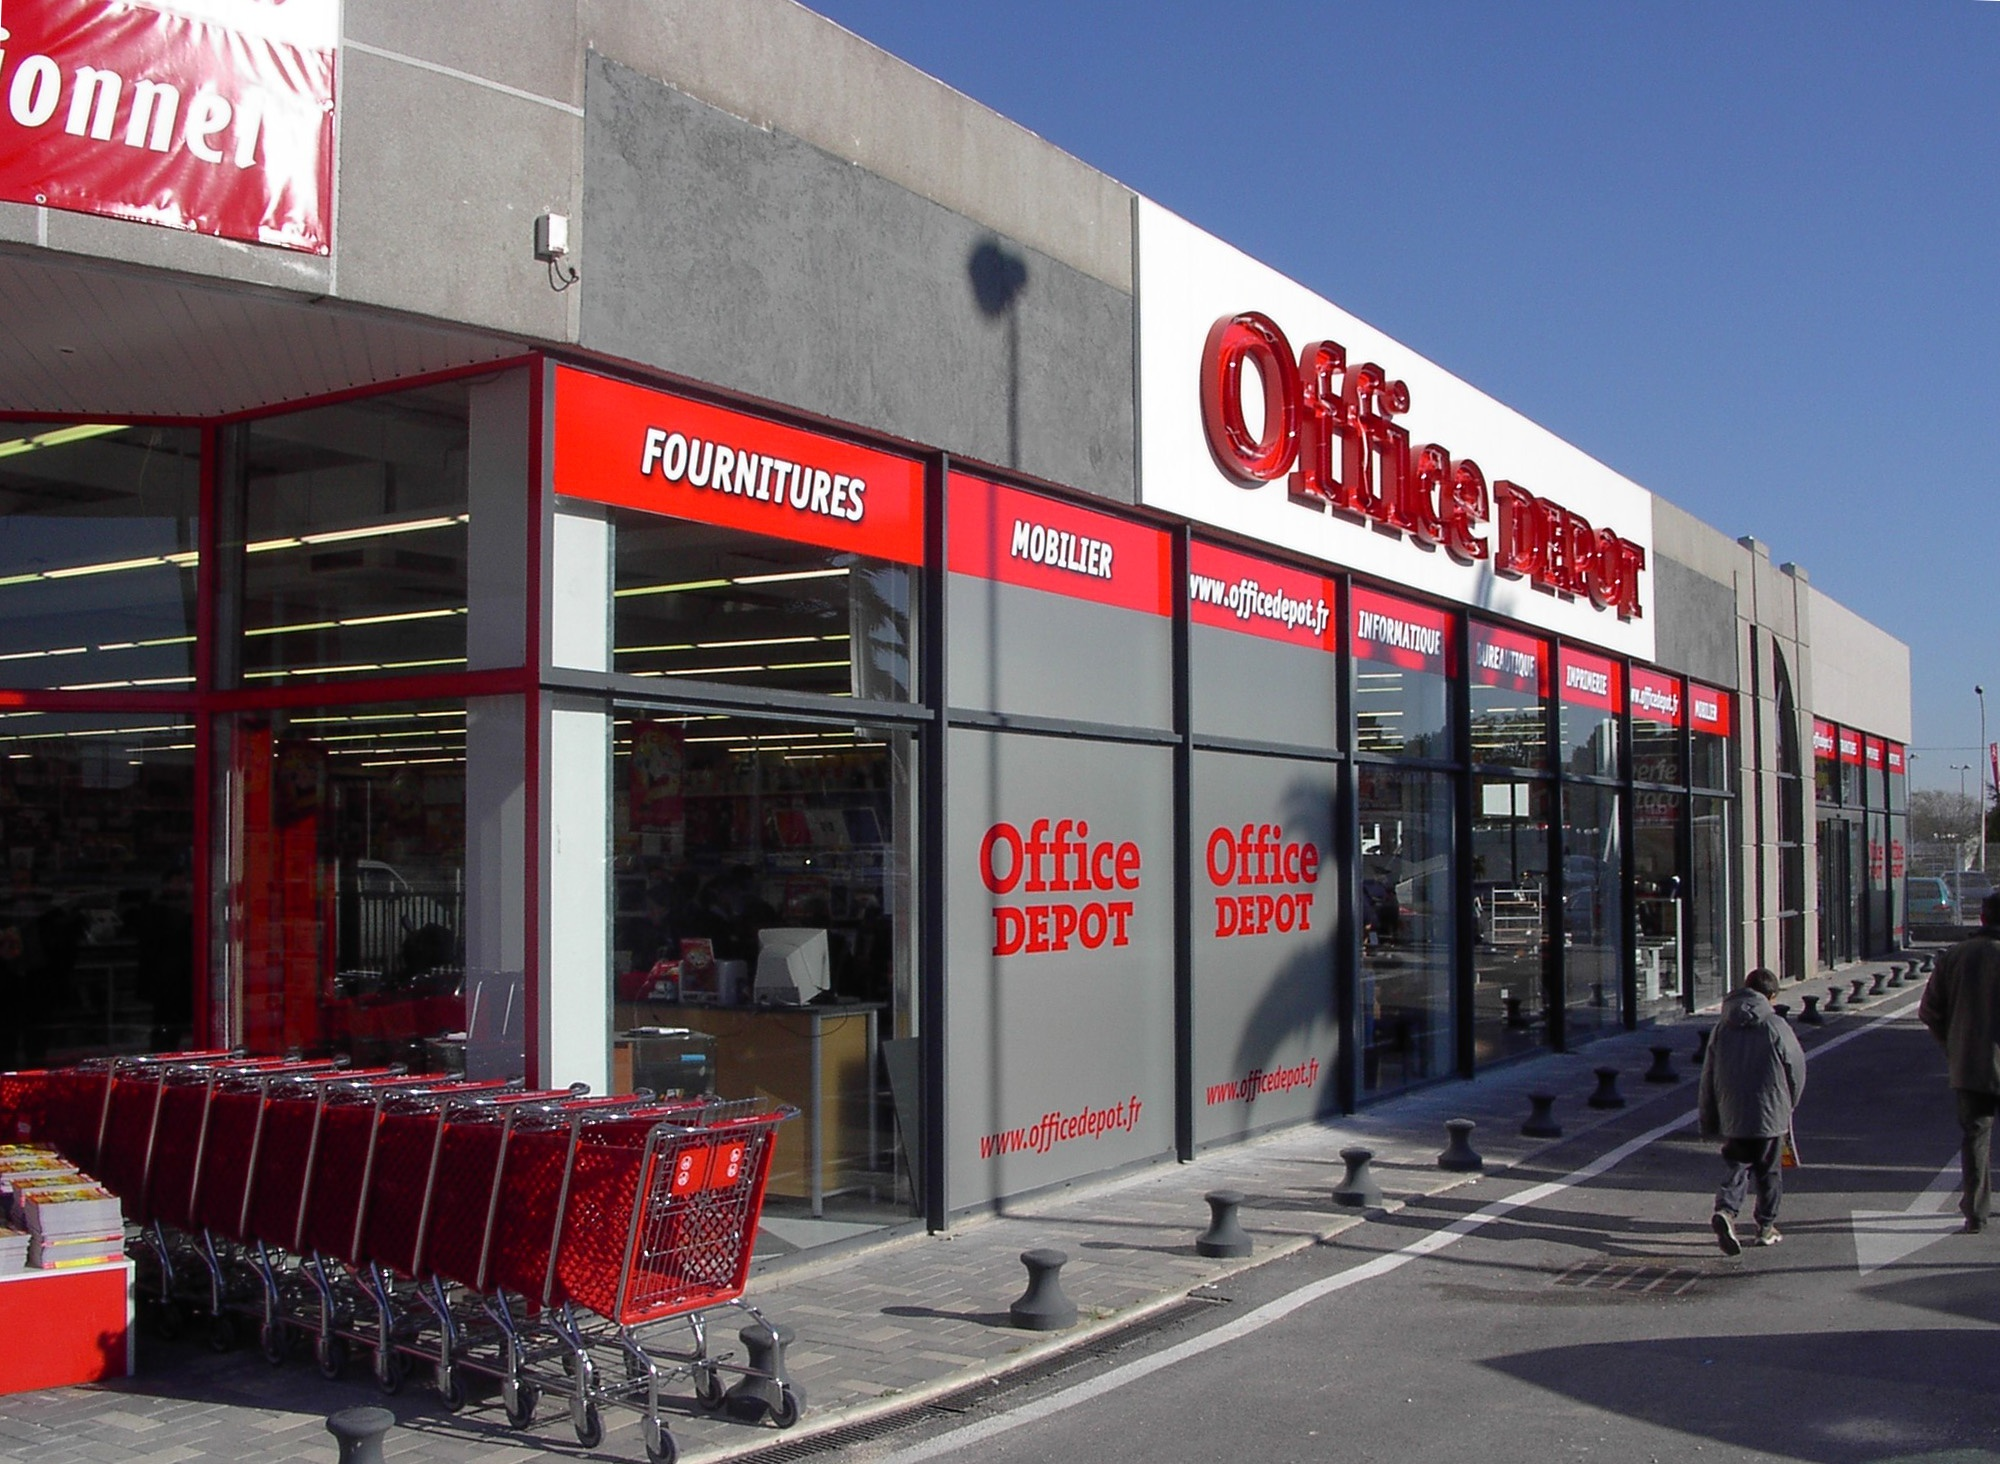 Magasin office depot toulon fournitures mobiliers de bureau